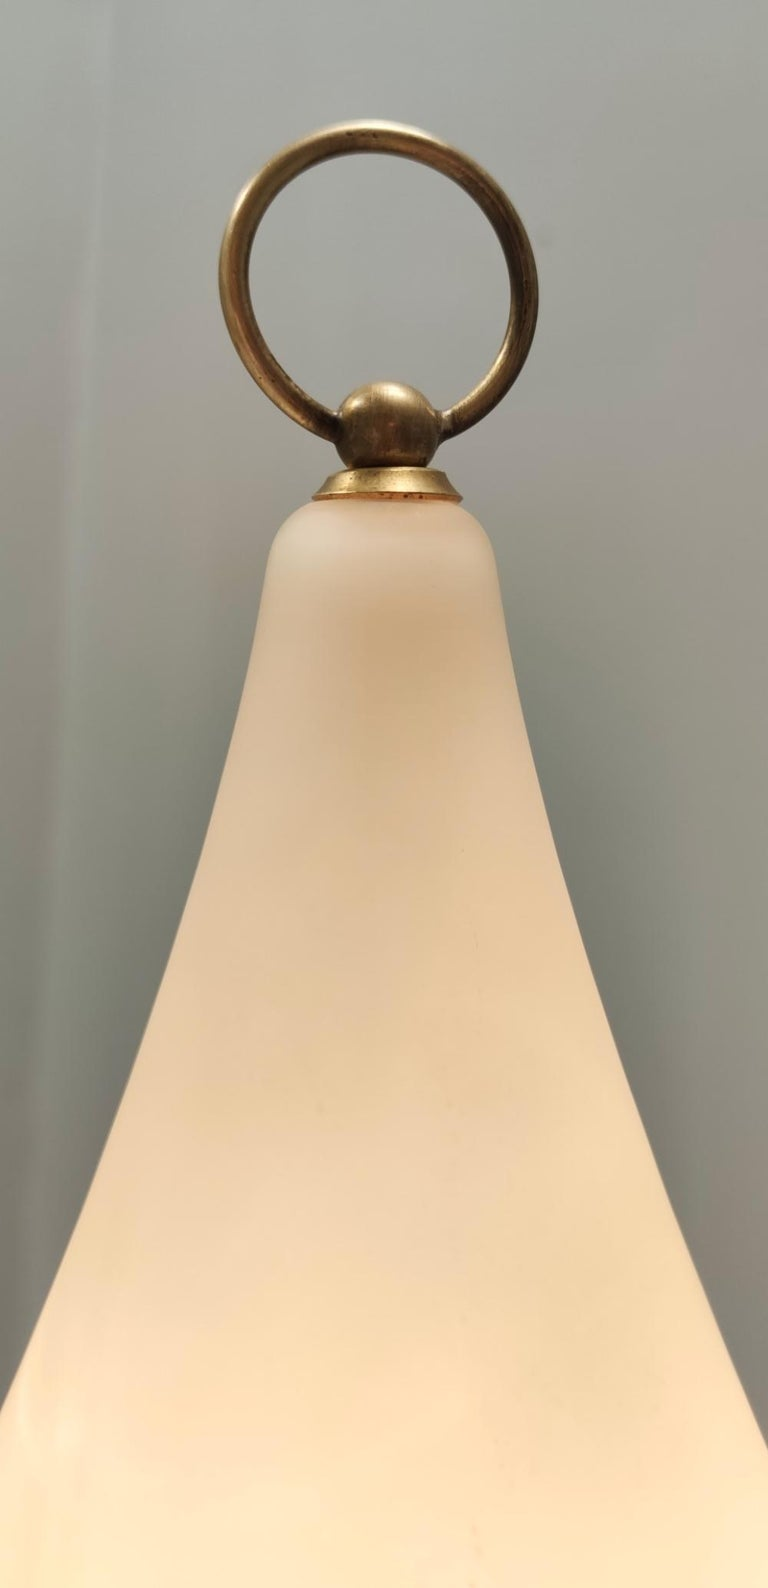 Mid-20th Century Elegant Midcentury Opaline Glass and Iron Floor Lamp by Stilnovo, Italy For Sale